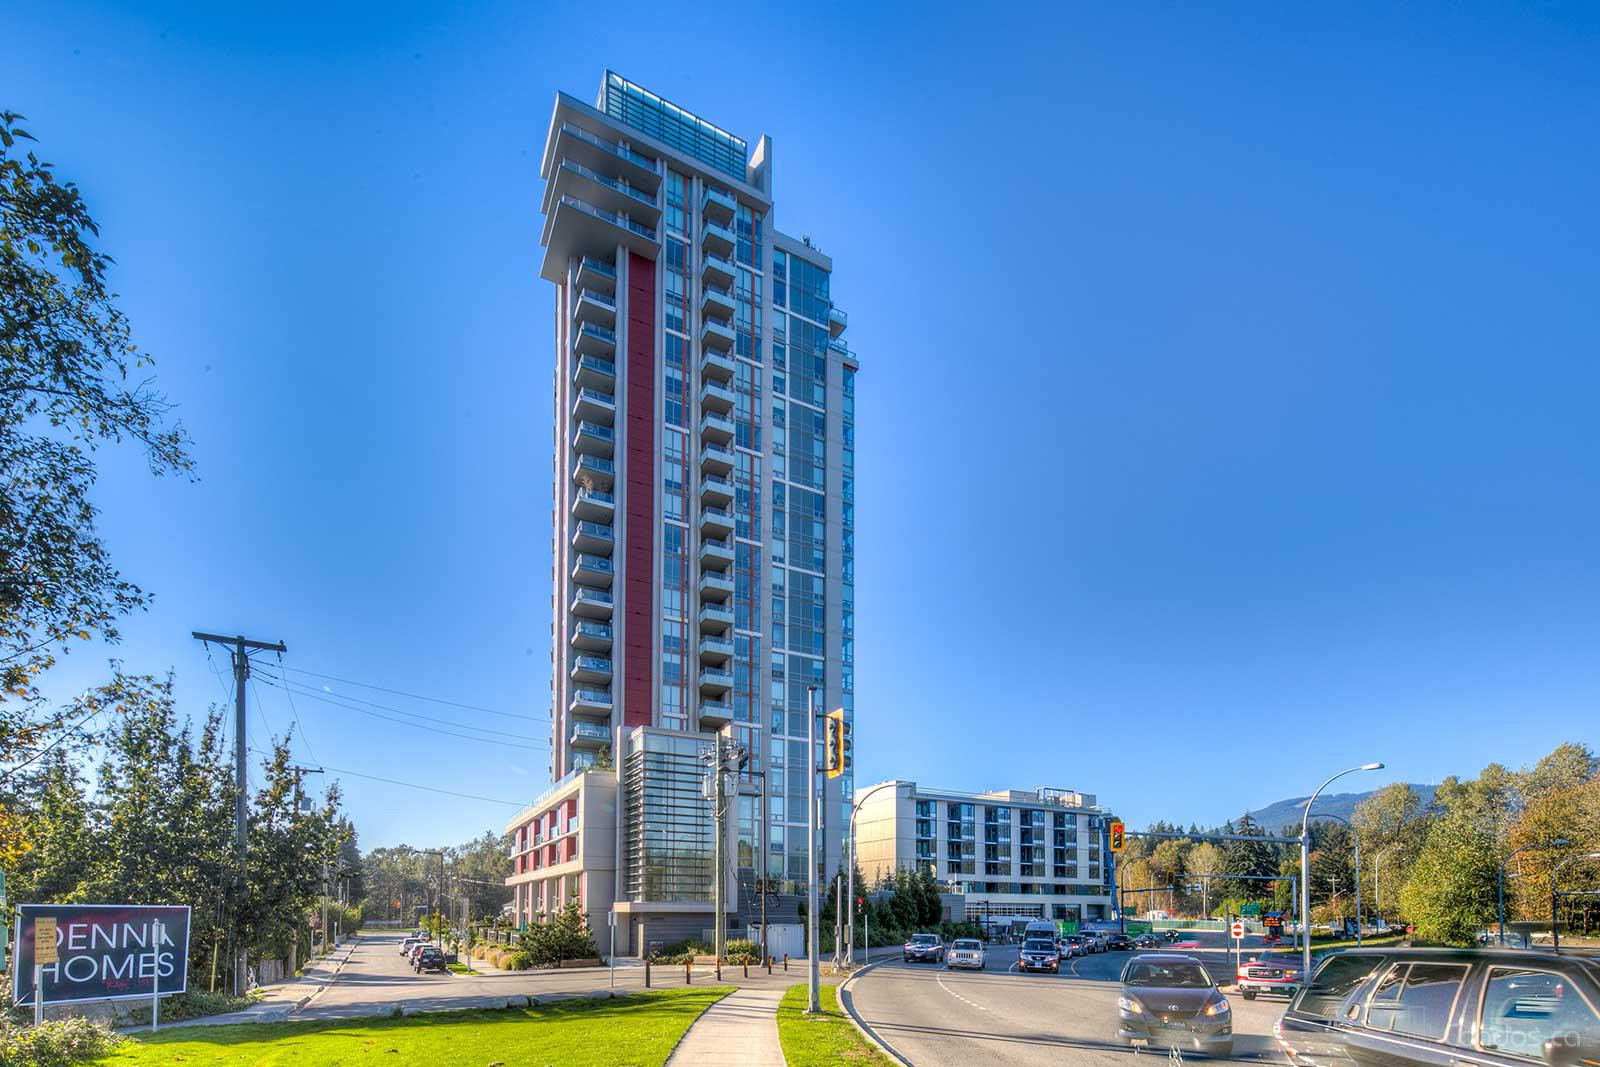 Beacon at 1550 Fern St, North Vancouver District 0